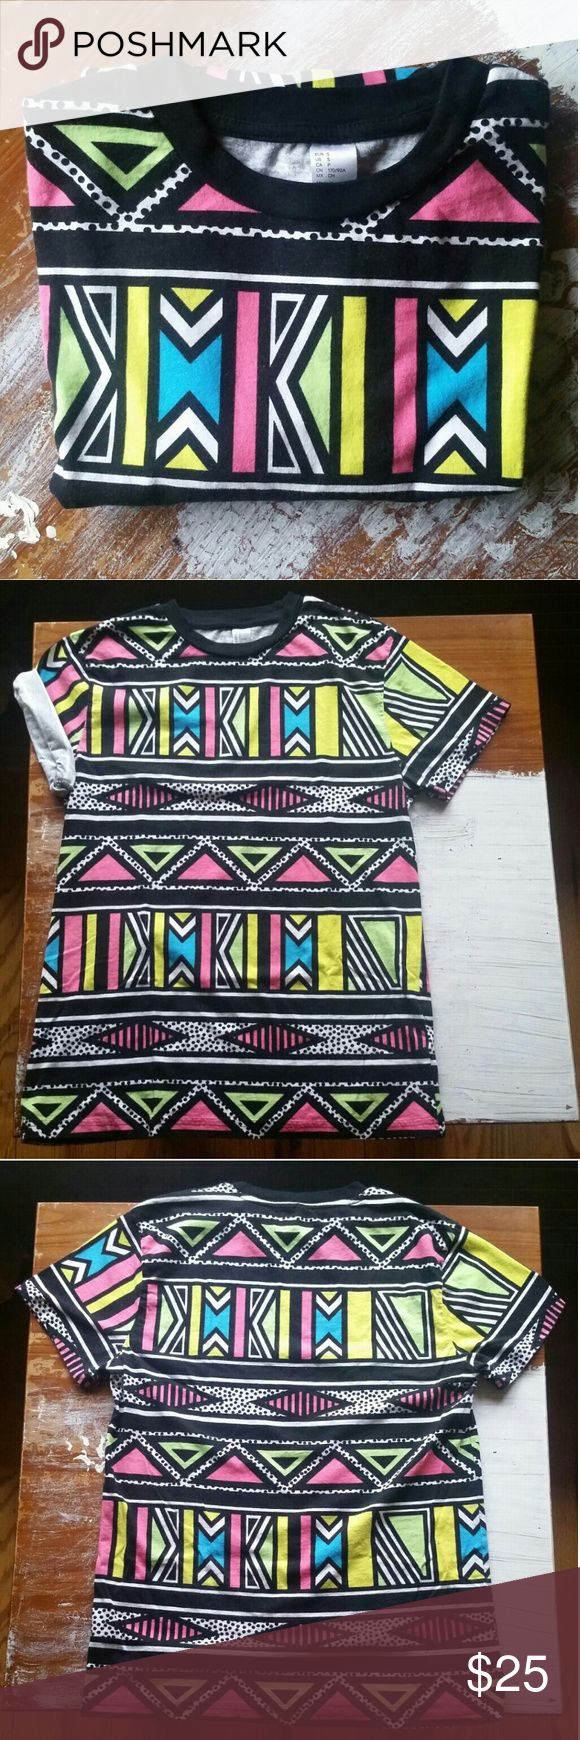 Design t shirt neon colors - H M Short Sleeve Neon Tribal Print Tshirt S Faux Tribal Shirt With Neon Colors From